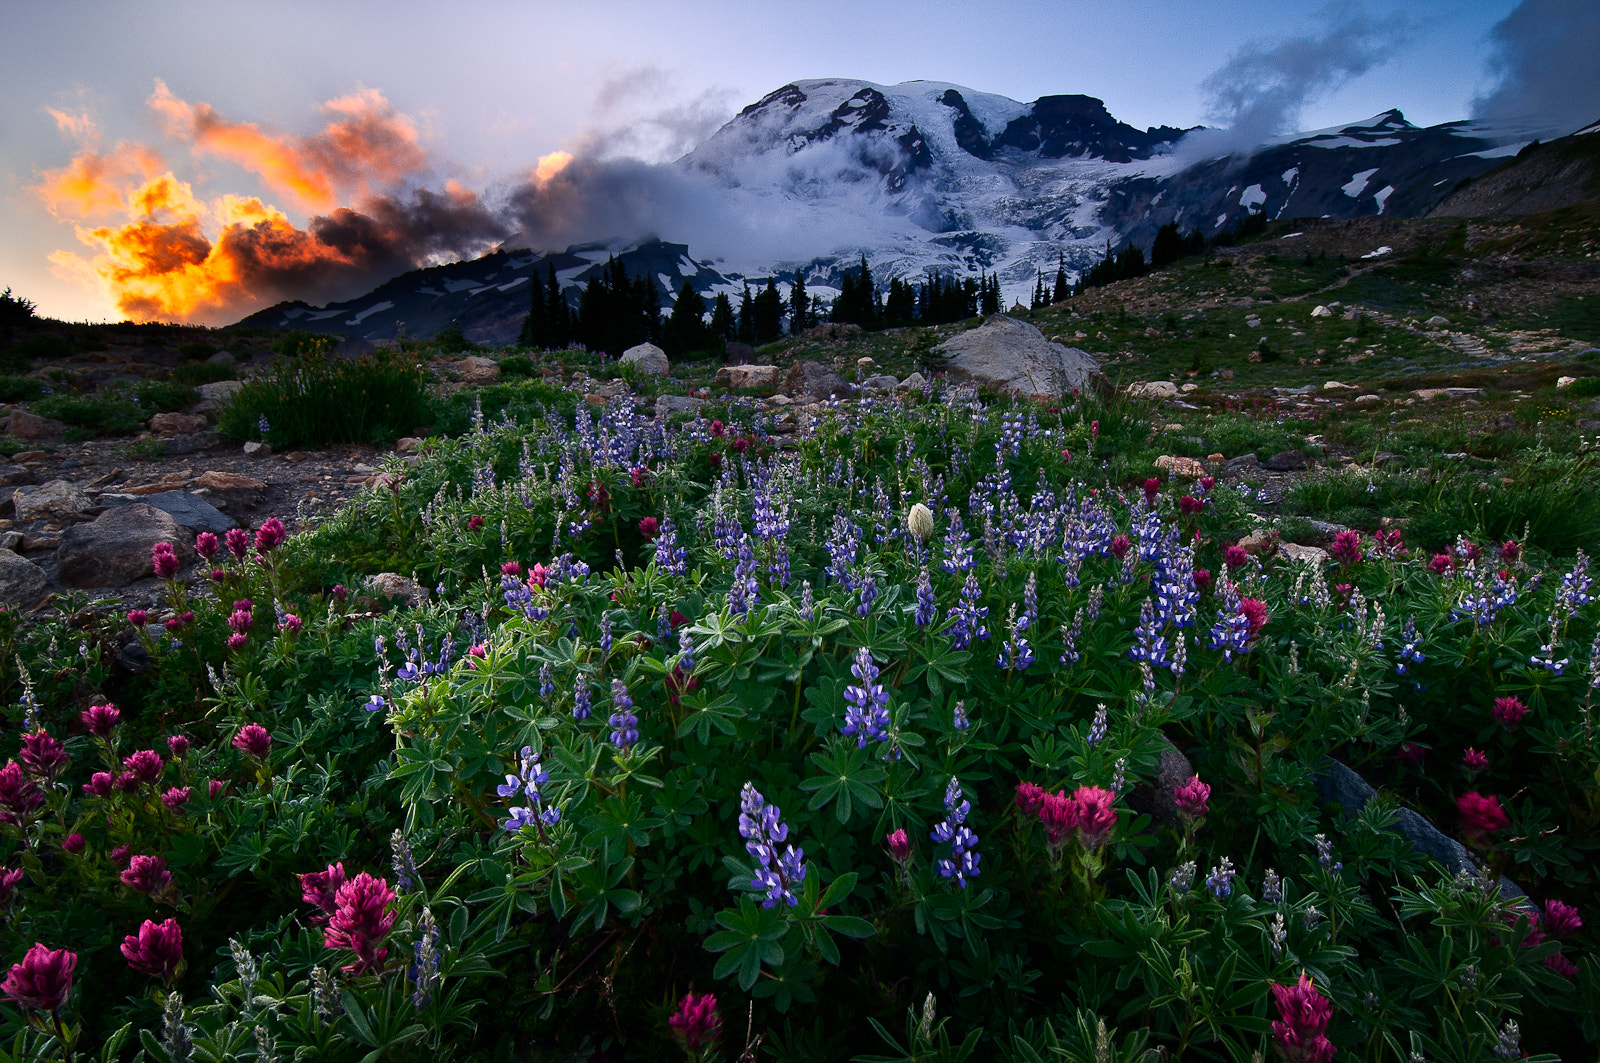 Photograph Mountain Explosion by Jay D. on 500px